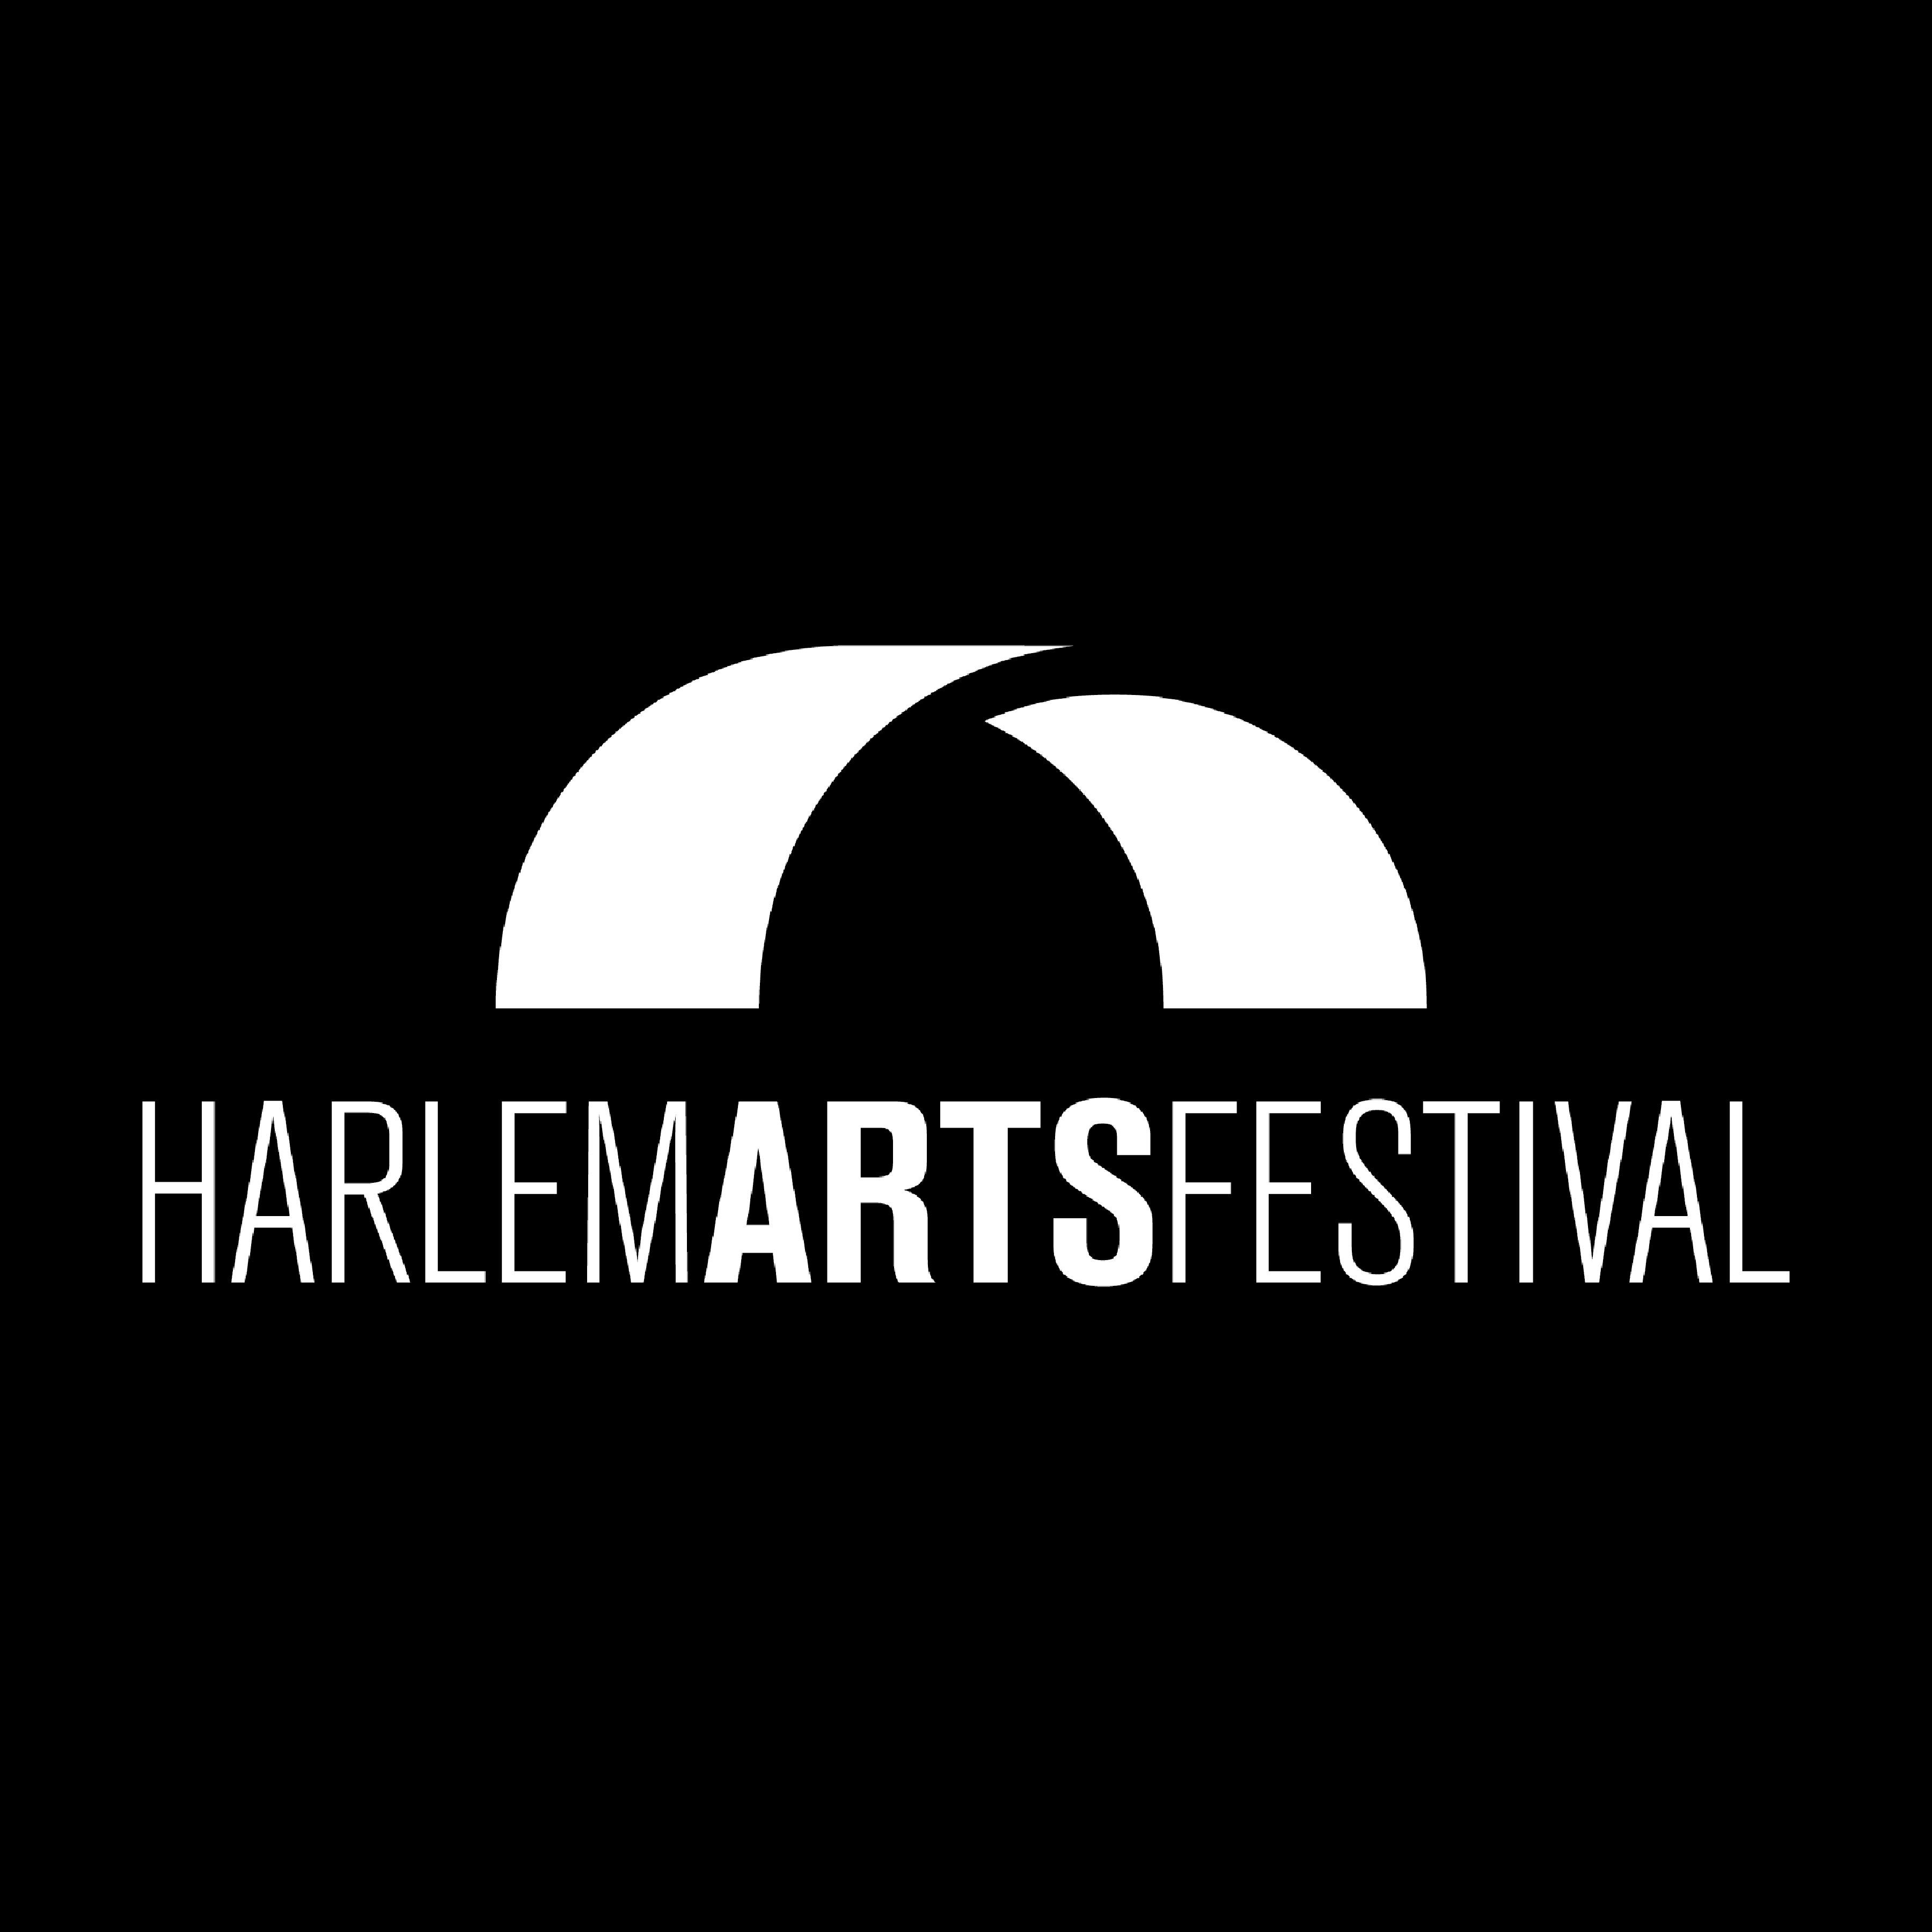 Harlem Arts Festival, June 25 – 26